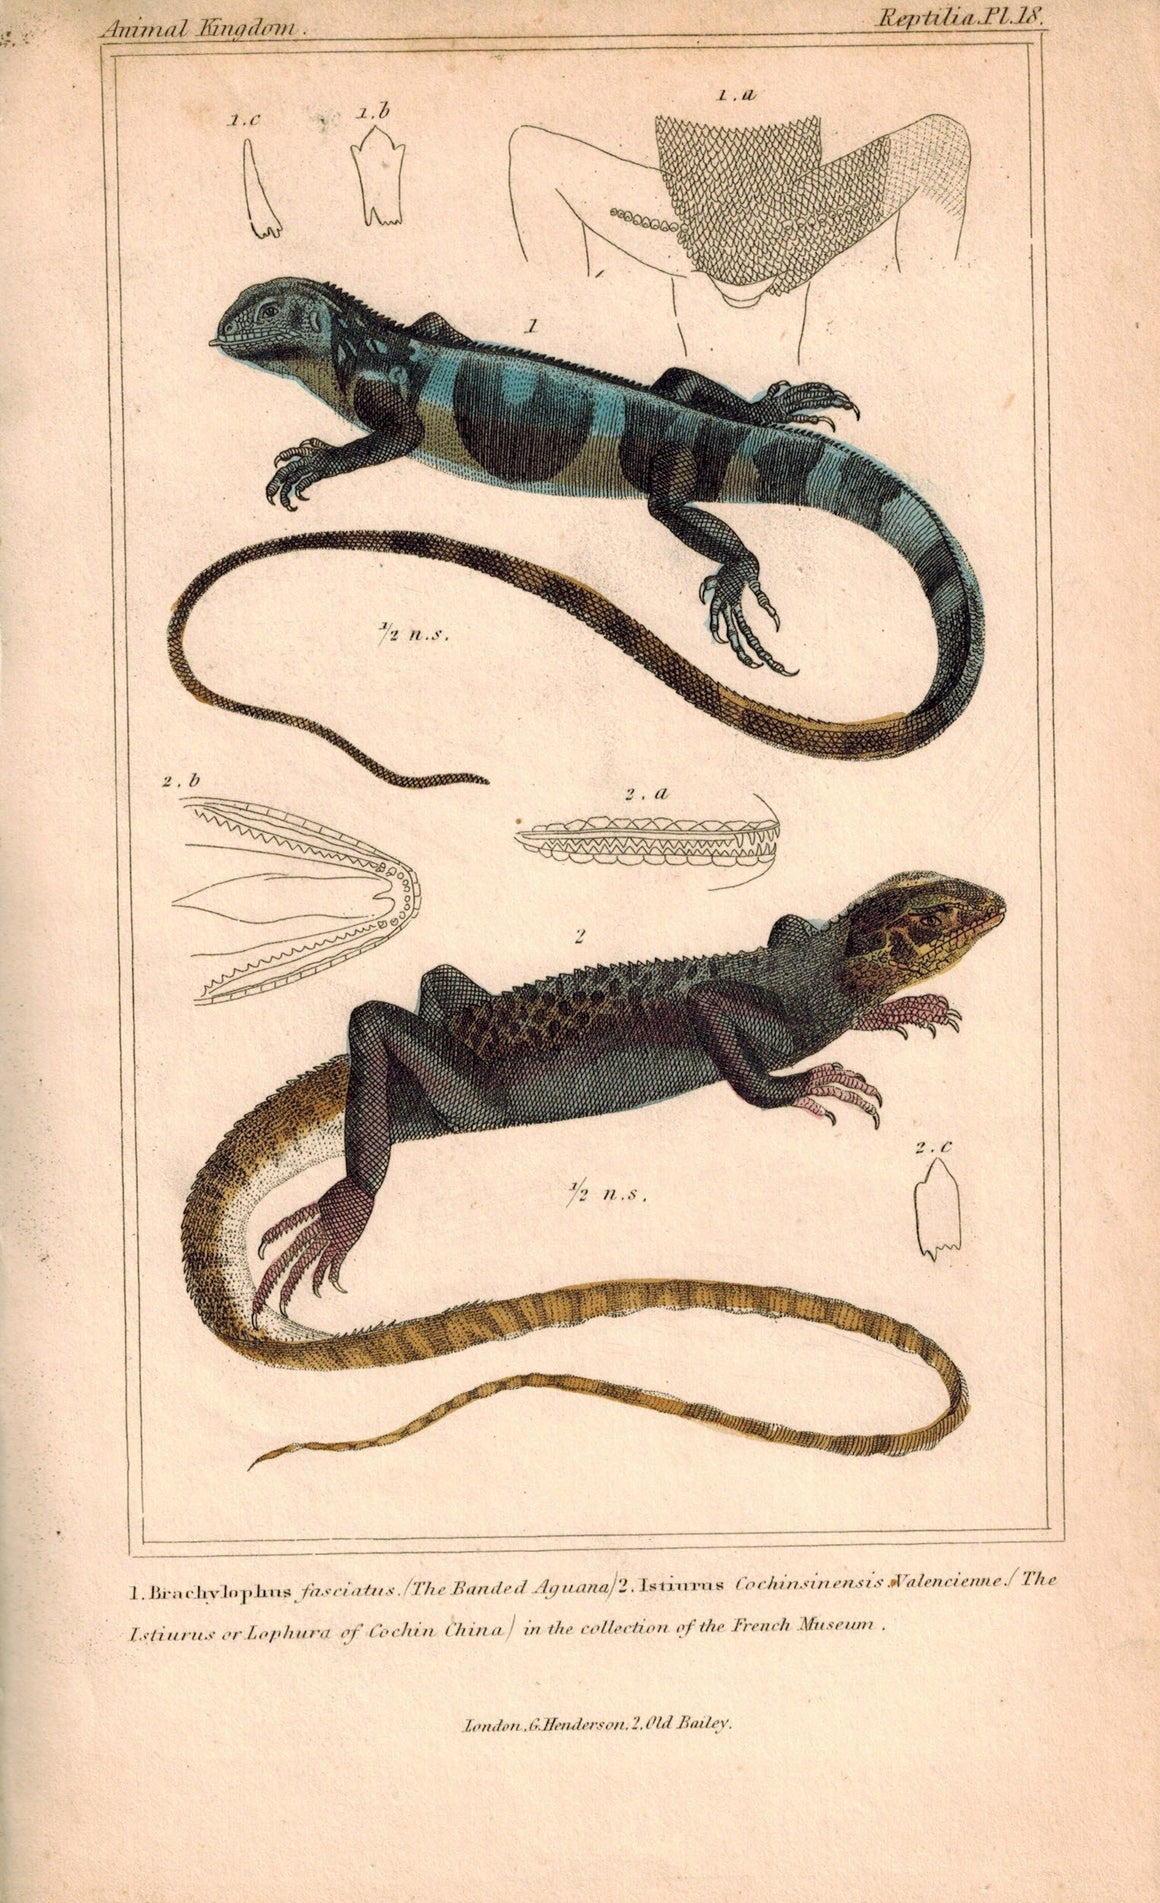 Banded Aguana, Lophura of Cochin China Lizards 1834 Engraved Cuvier Print Pl 18